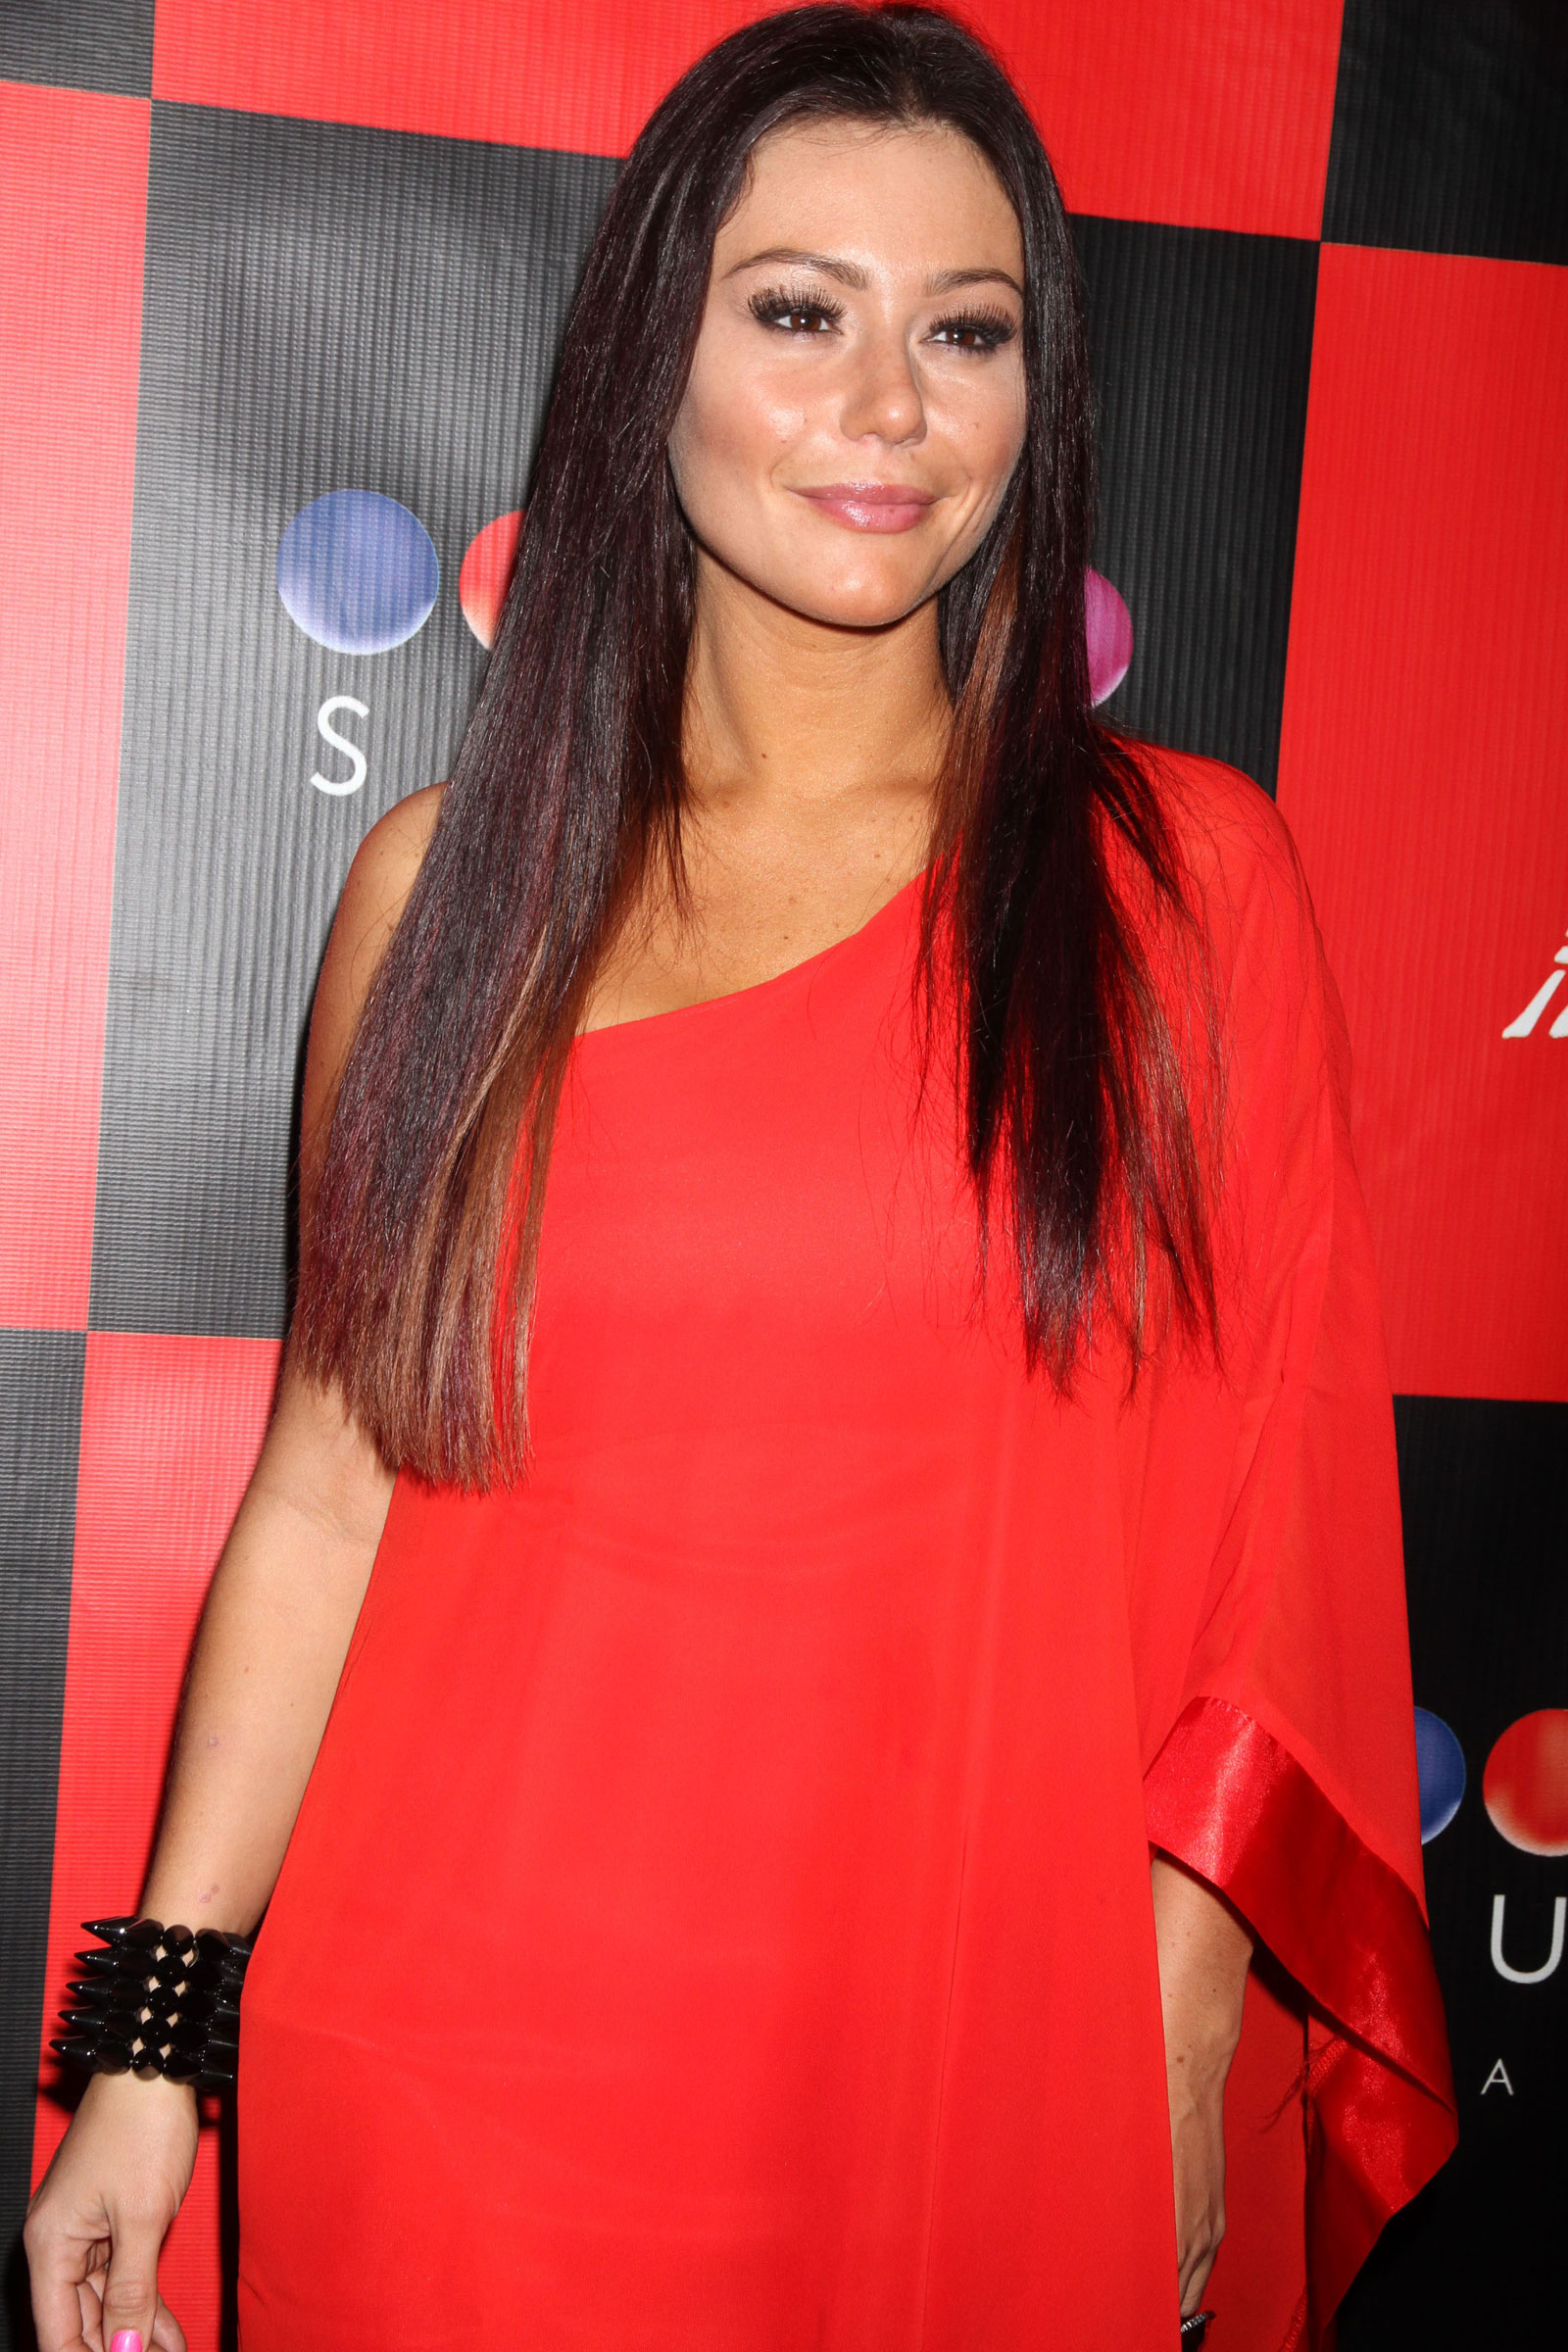 Jenni JWoww Farley Cel... Michelle Williams